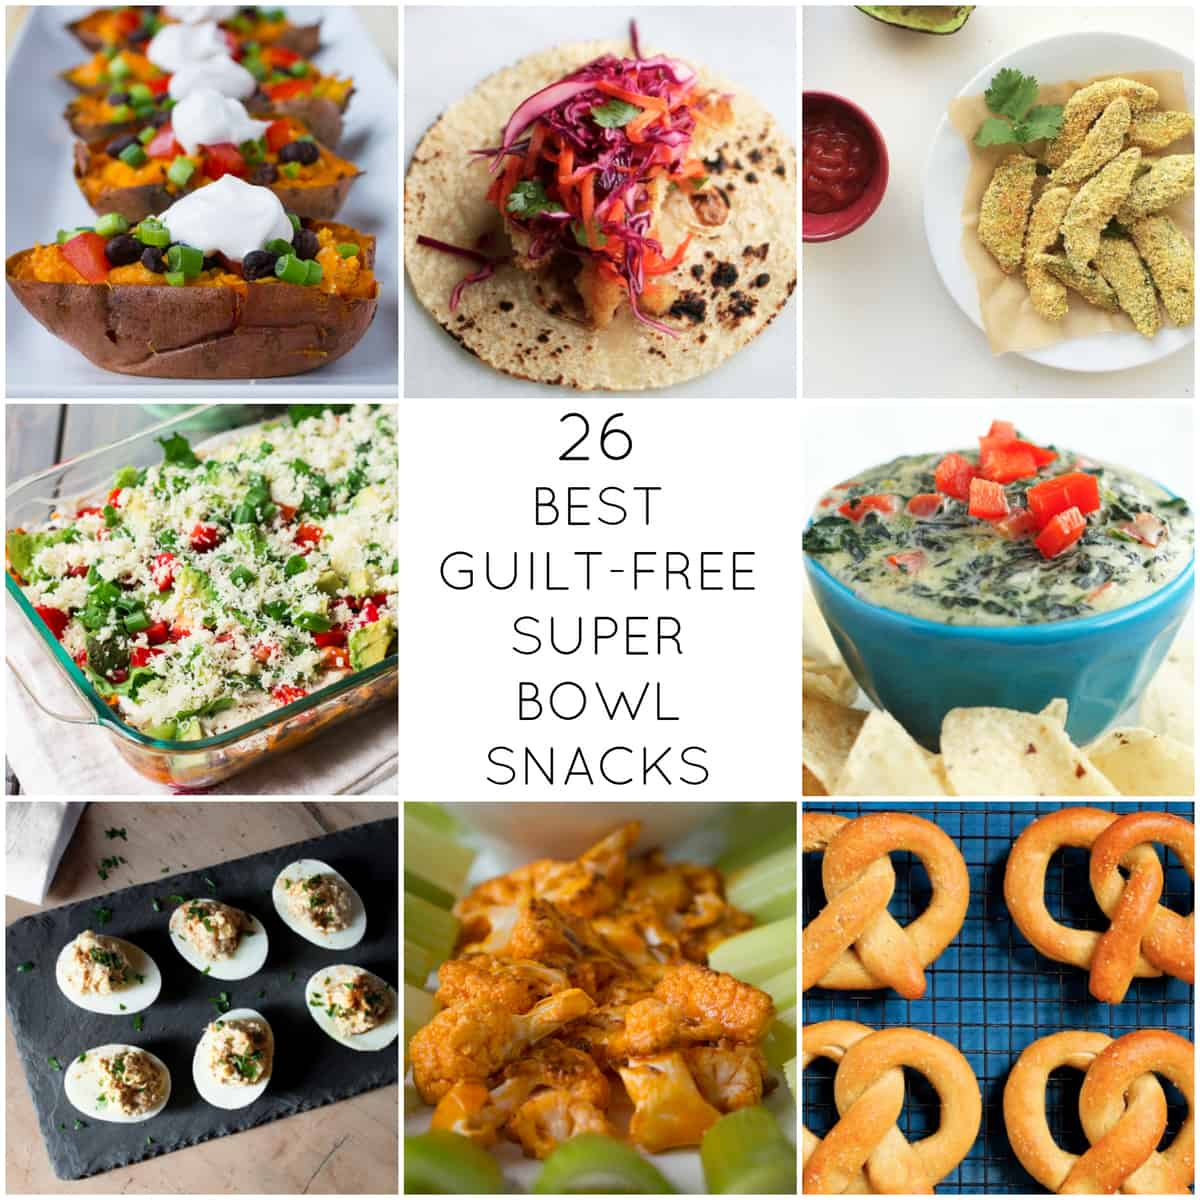 Best Guilt Free Super Bowl Snacks. A round-up of the 26 best guilt-free super bowl snacks for the big game day on Sunday!  | @TheFoodieDietitian